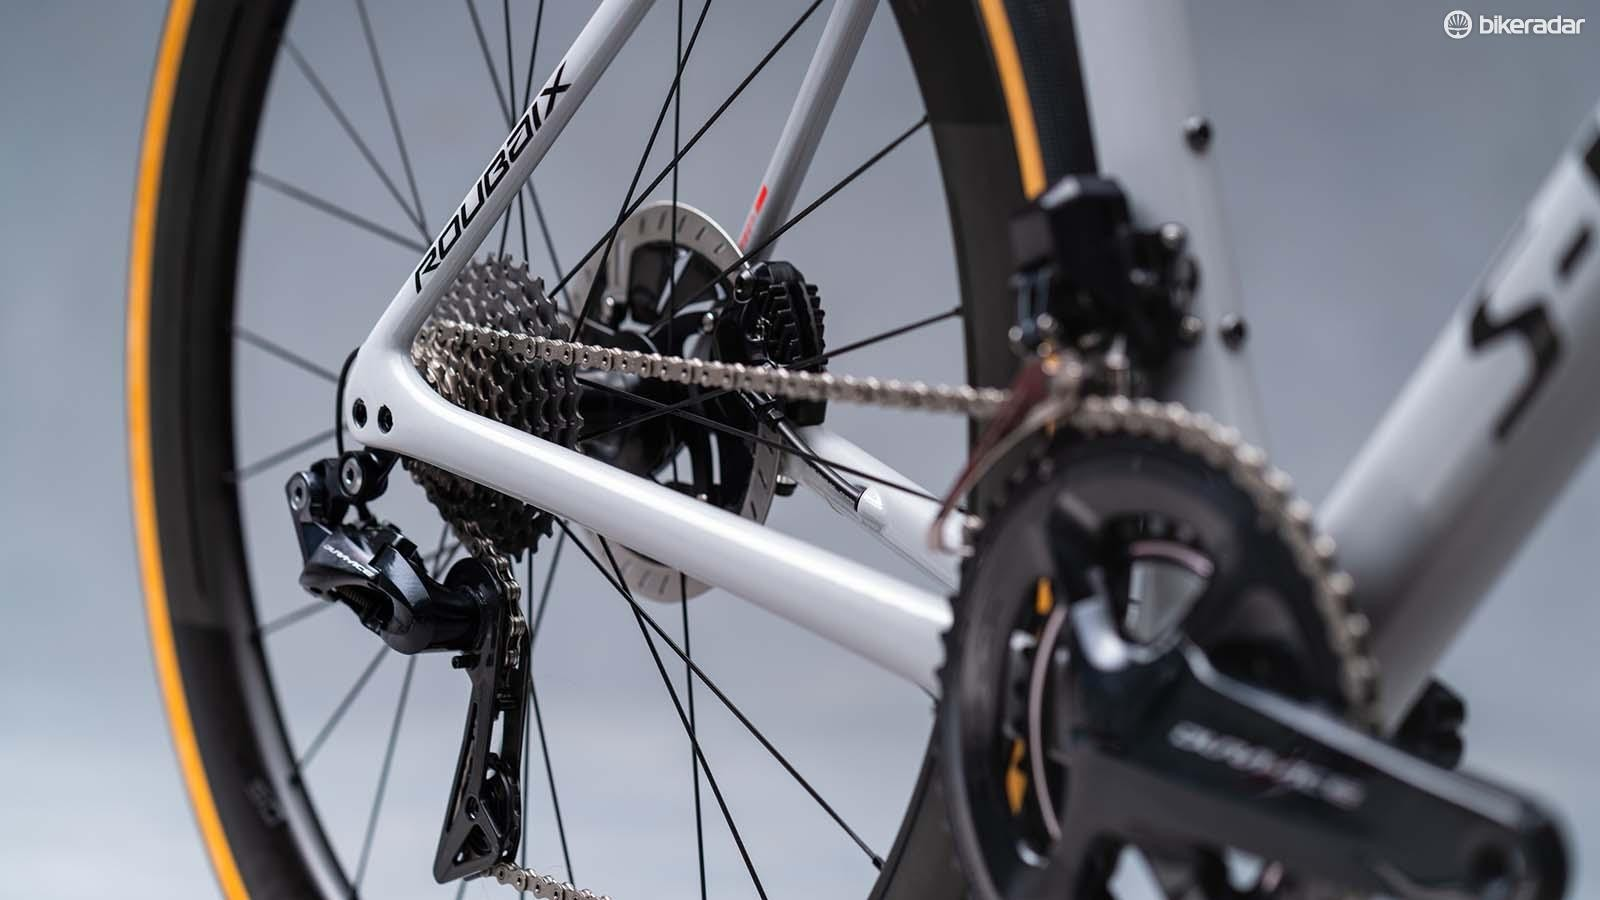 SRAM's Force chainset